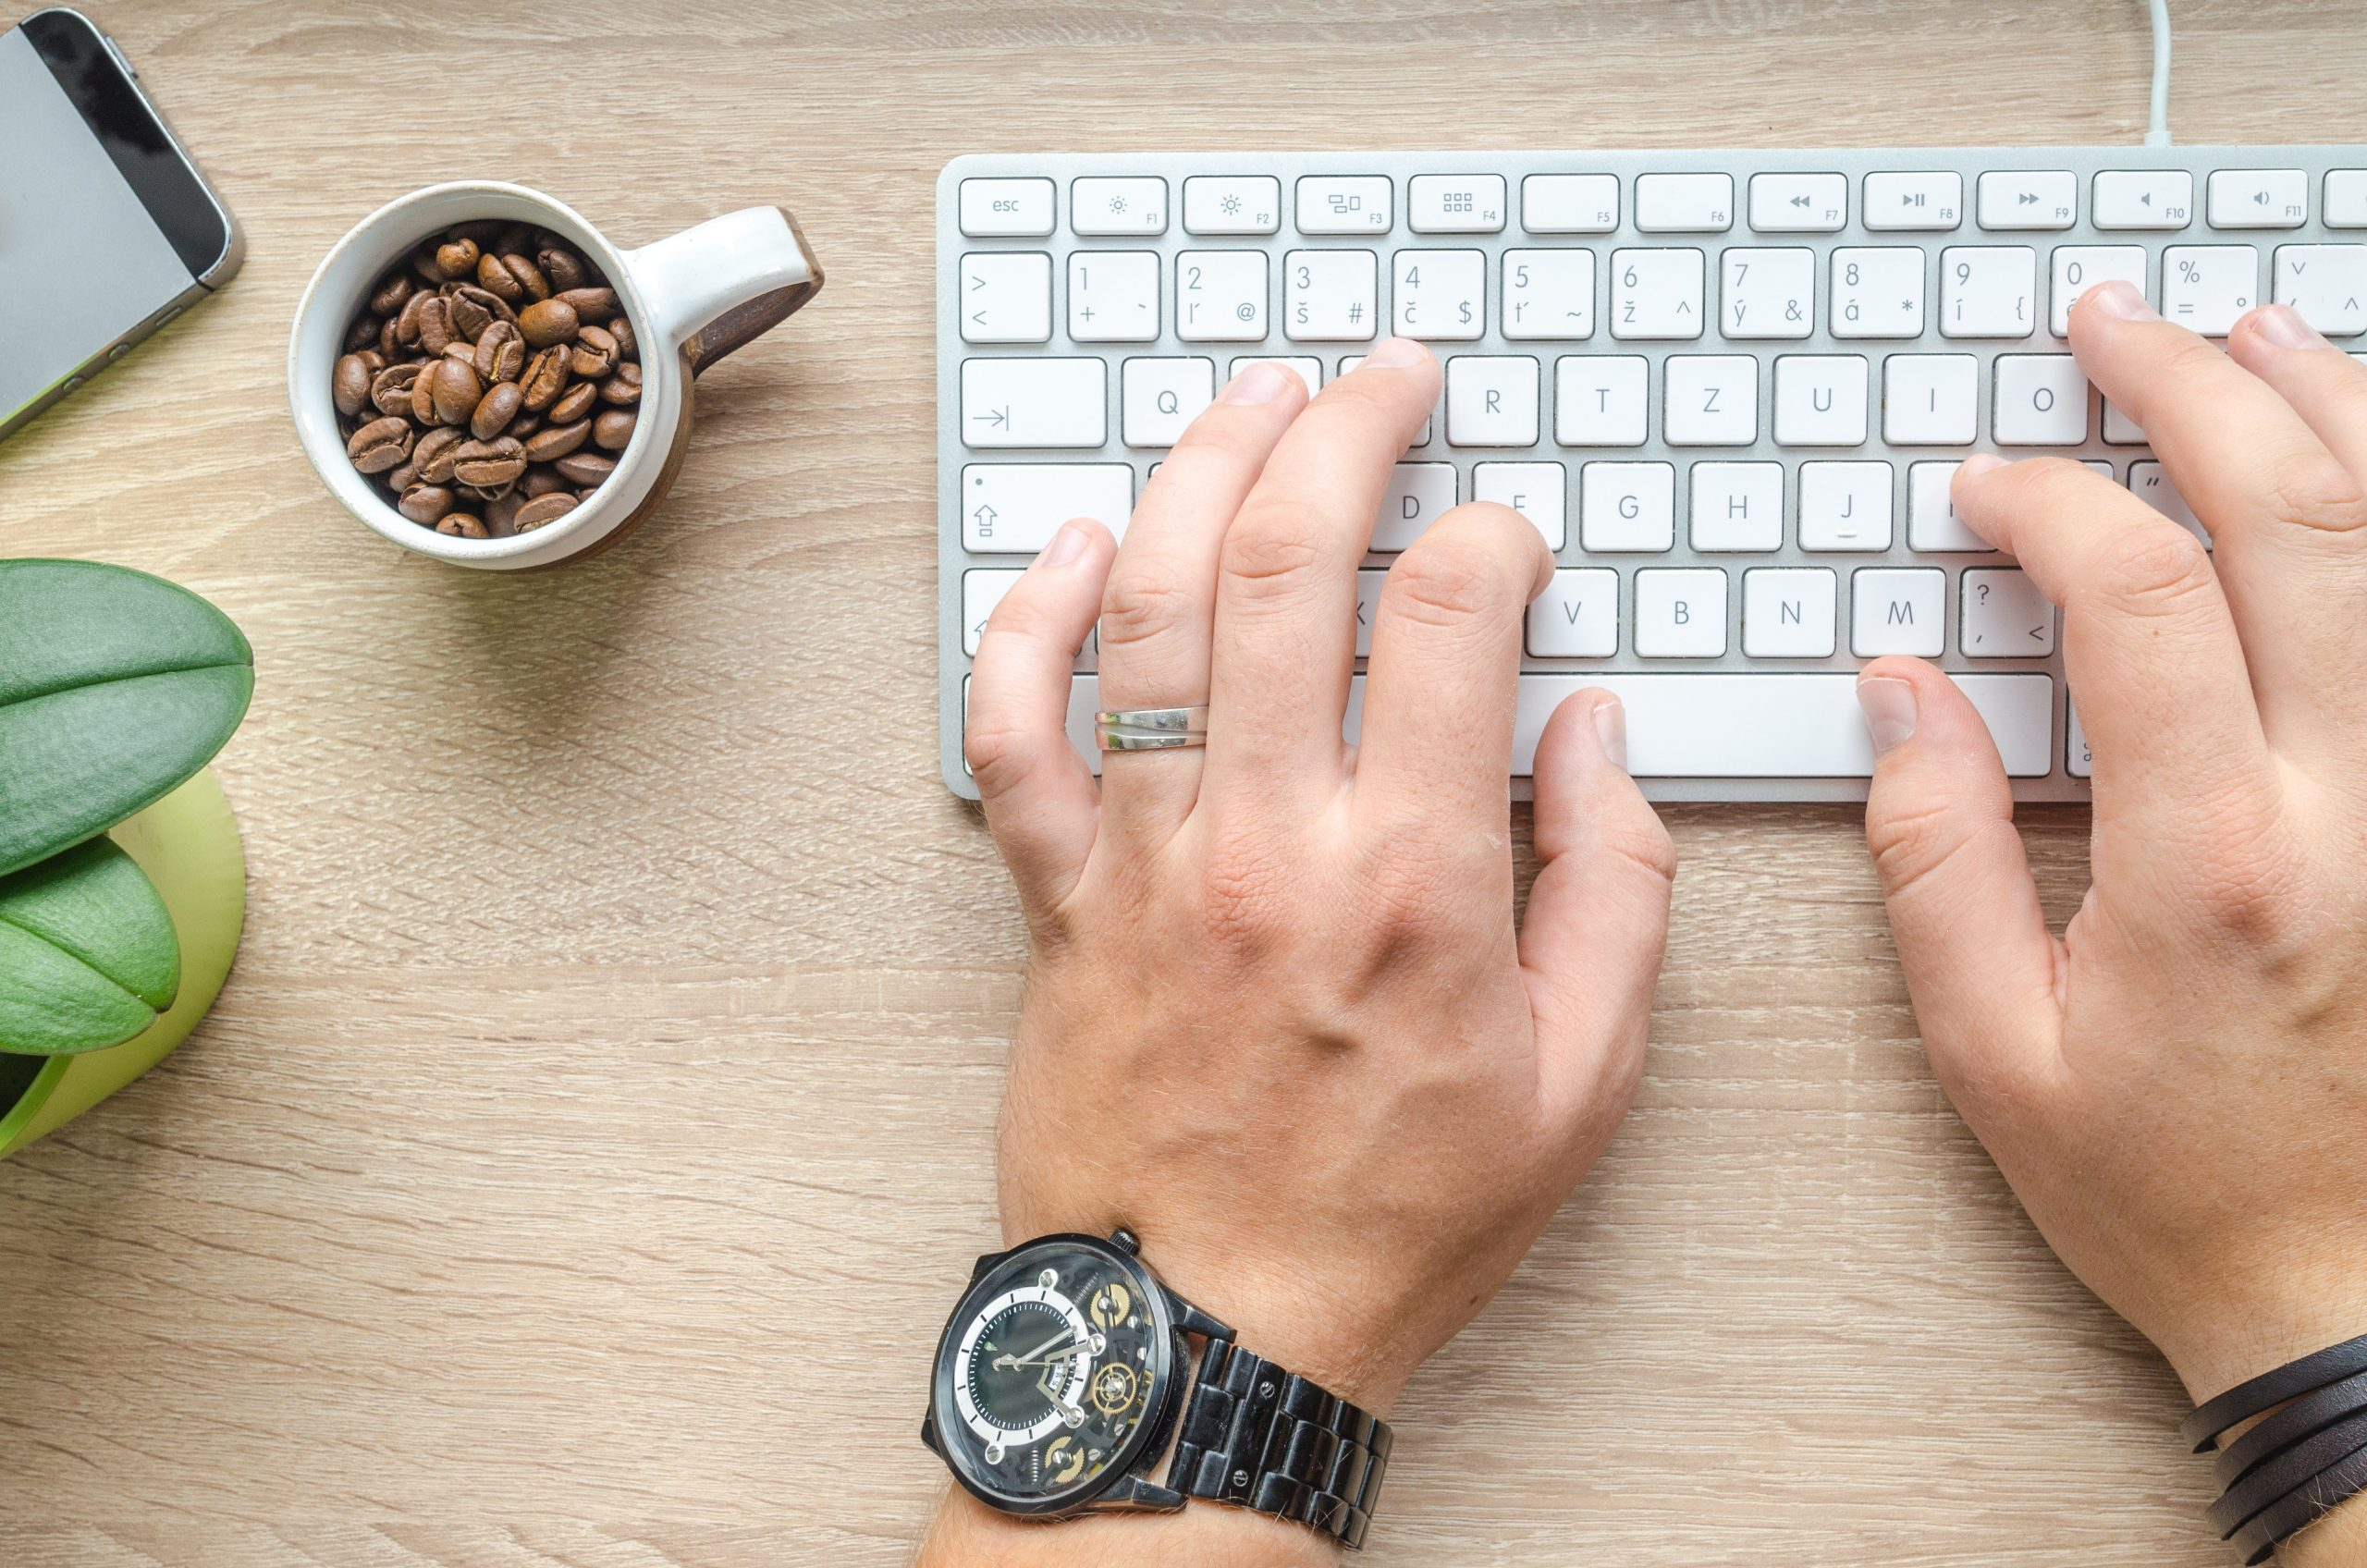 How do you break bad typing habits?